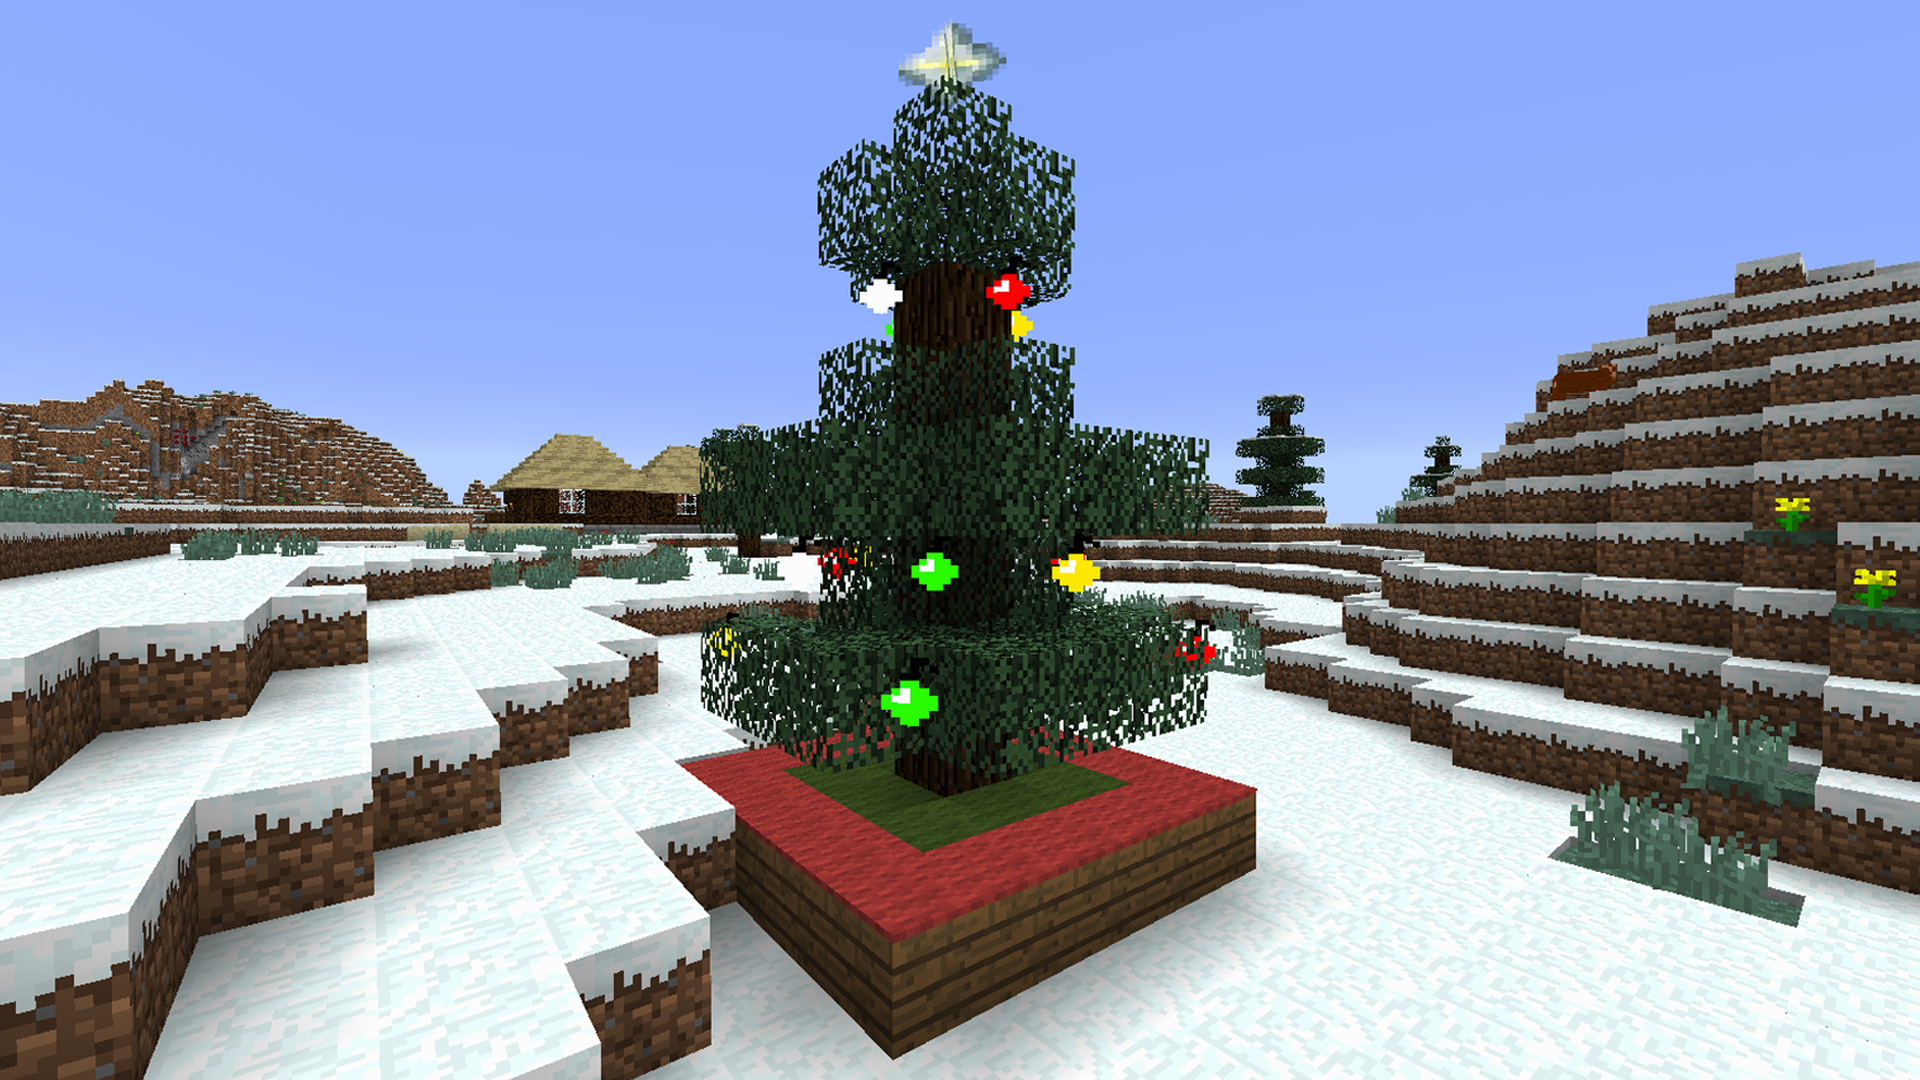 Christmas Minecraft Decorations.The Spirit Of Christmas 1 8 Minecraft Mods